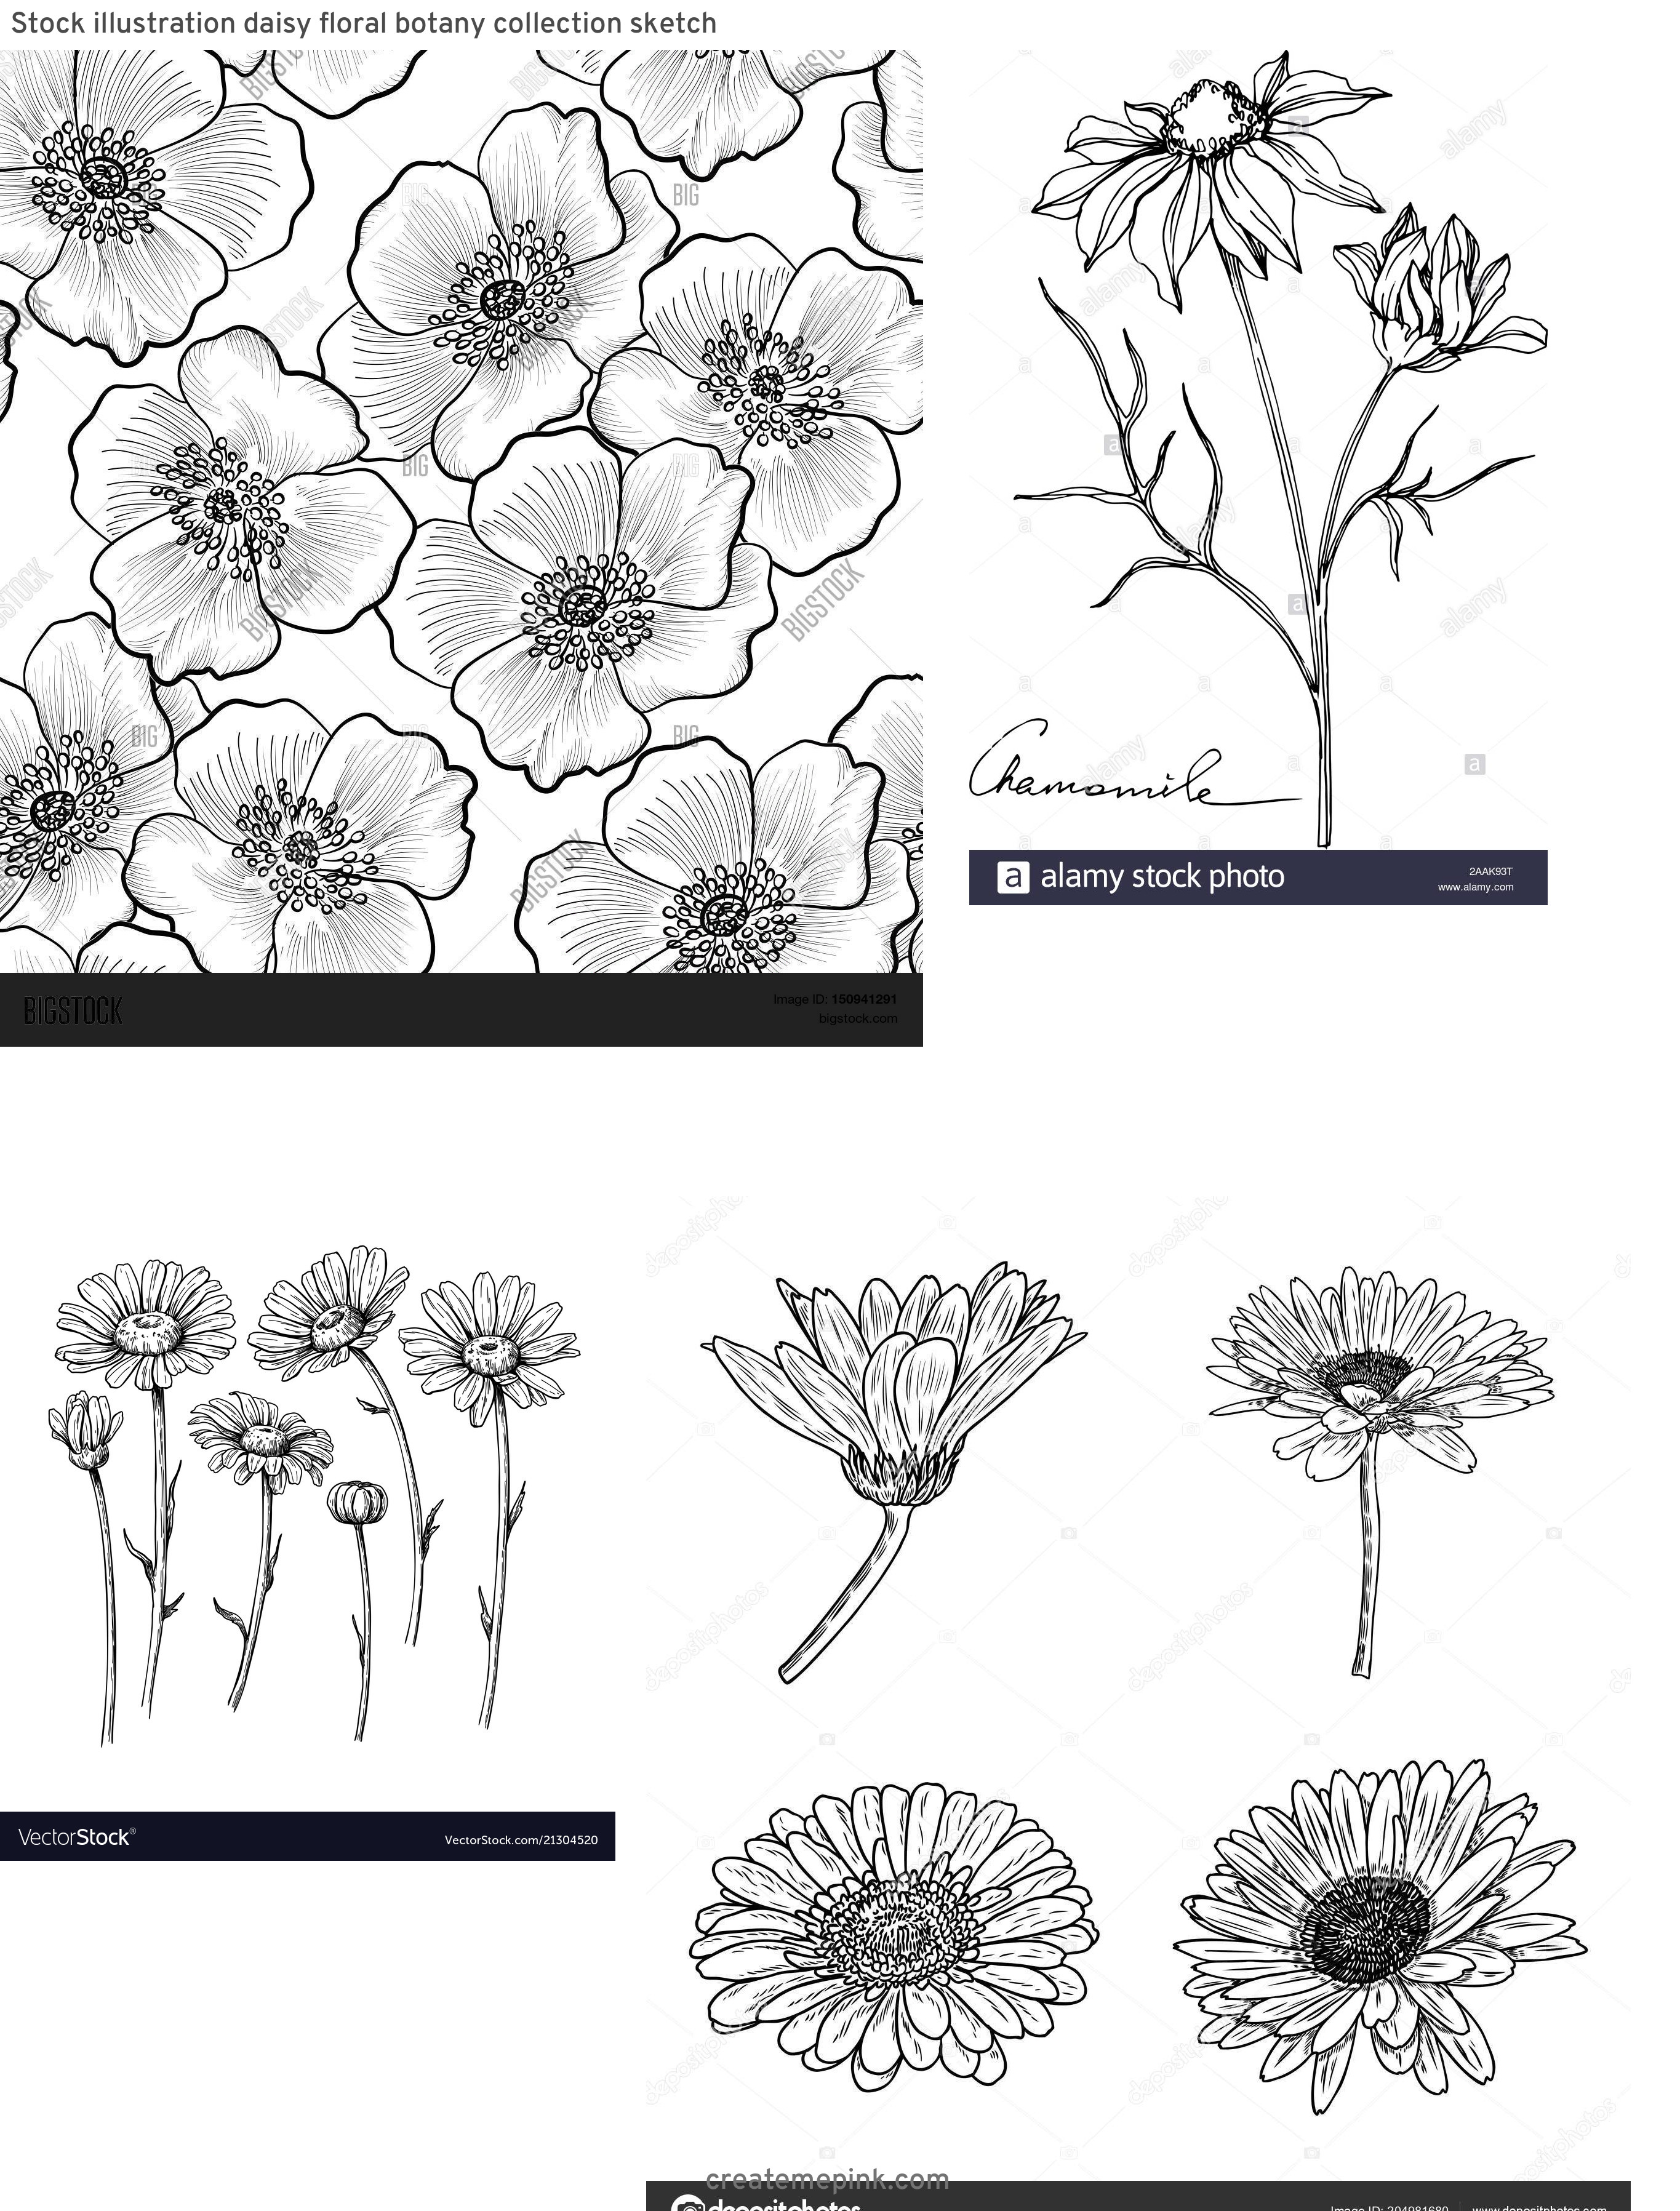 Flower Daisey Black Vector Art: Stock Illustration Daisy Floral Botany Collection Sketch